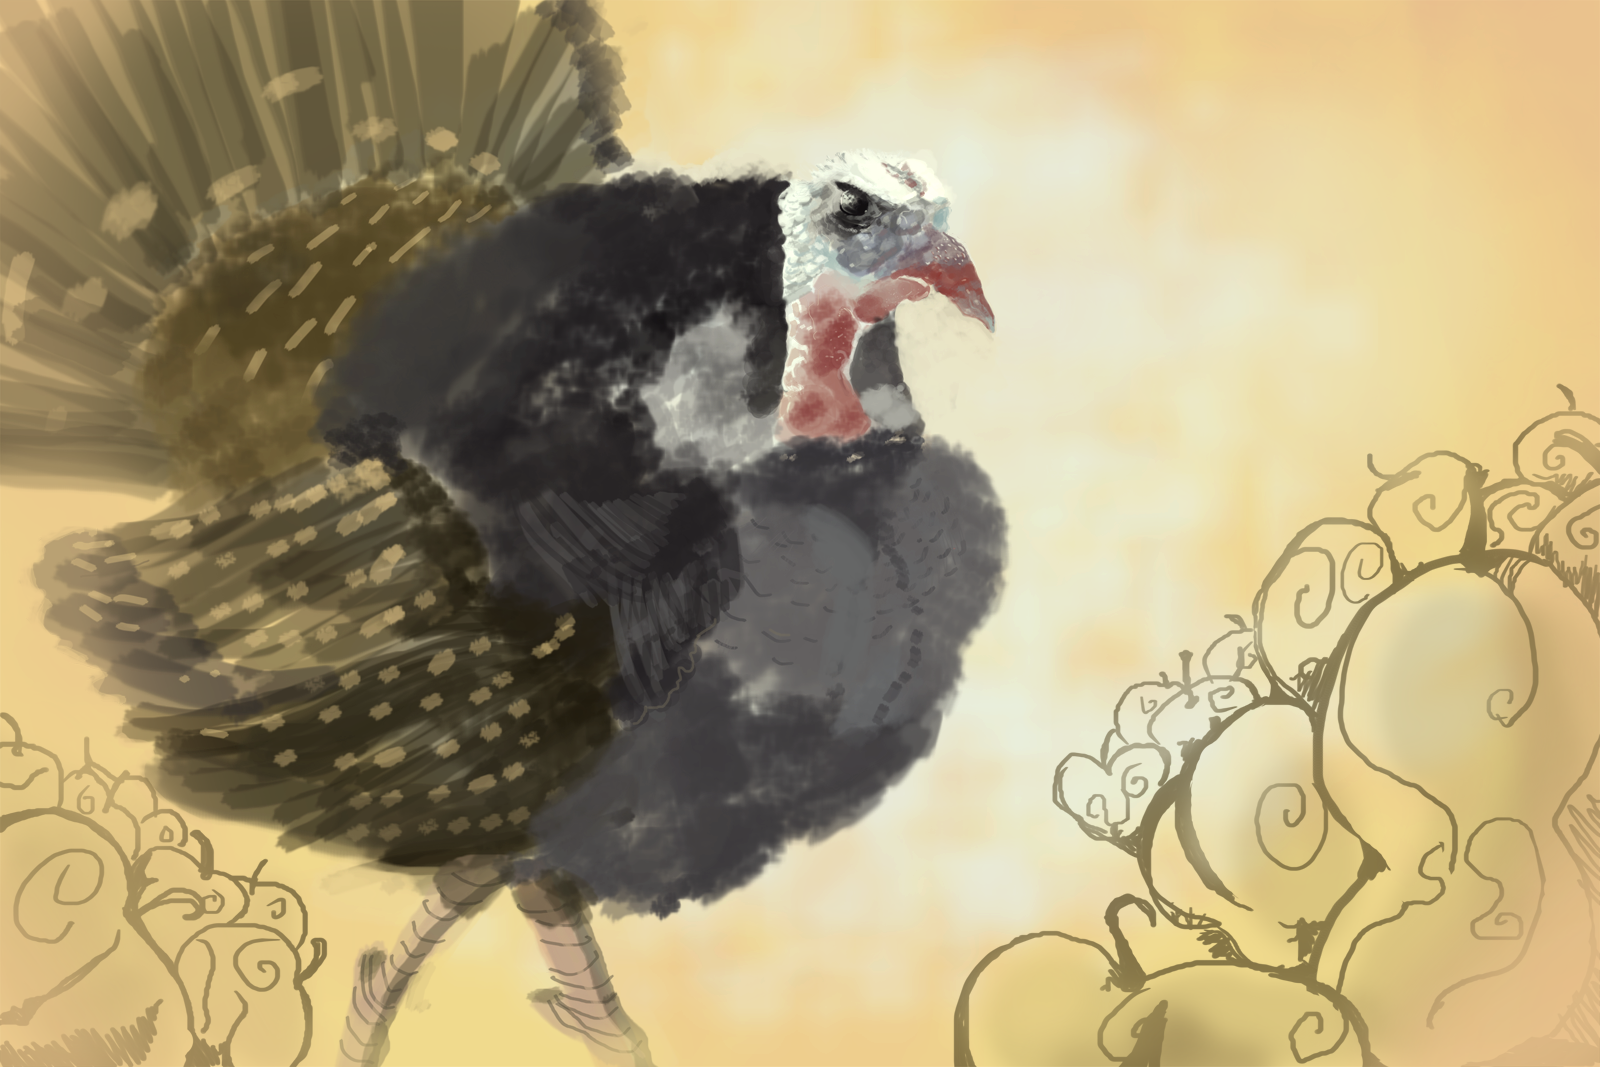 It be a Turkey